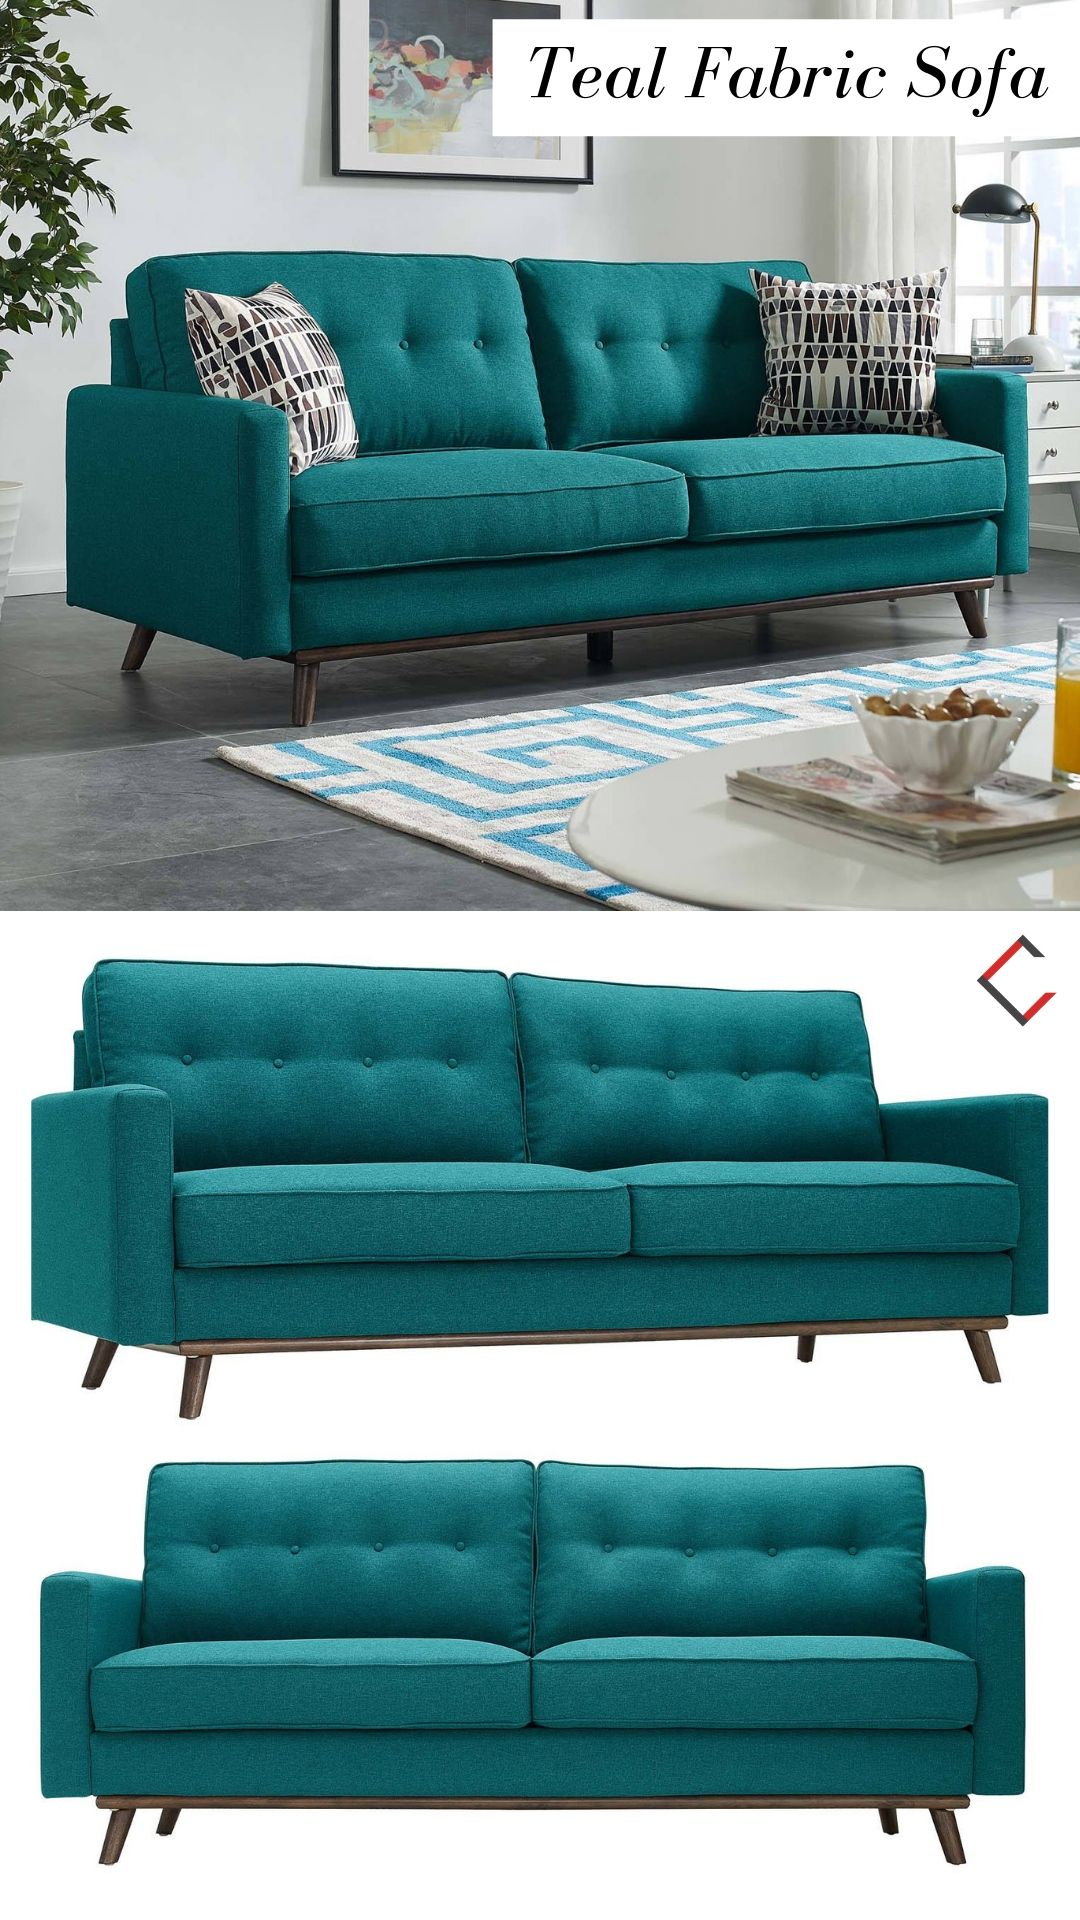 Modway Furniture Prompt Teal Fabric Sofa Furniture Fabric Sofa Night Day Furniture